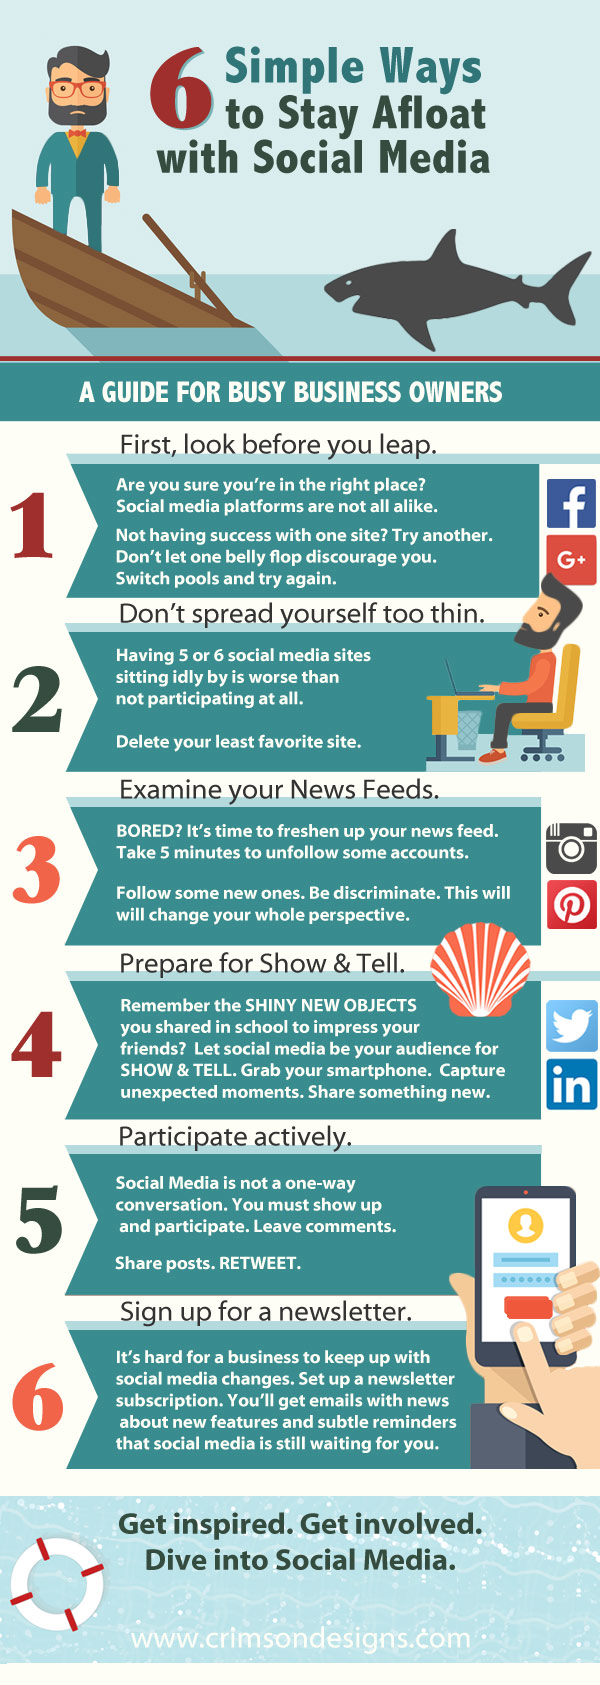 6 Simple Ways to Stay Afloat with Social Media - Infographic